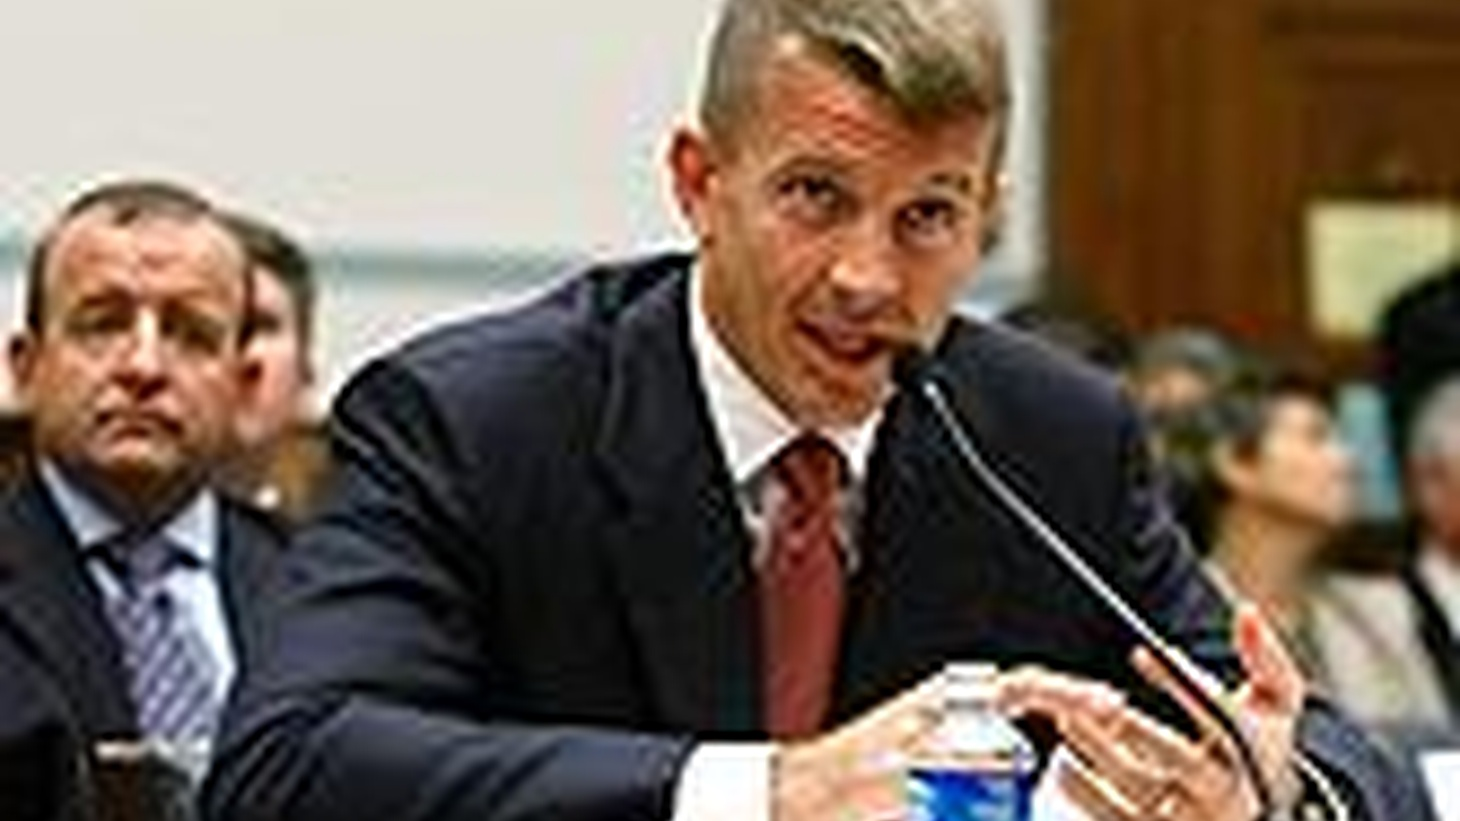 On Capitol Hill today, Blackwater USA got a grilling about its private security guards.  Are they highly-paid mercenaries out of control or skilled professionals taking on risky assignments so Marines and soldiers can focus on combat? Also, a historic meeting in North Korea, and the latest on Israel's midnight raid in Syria.